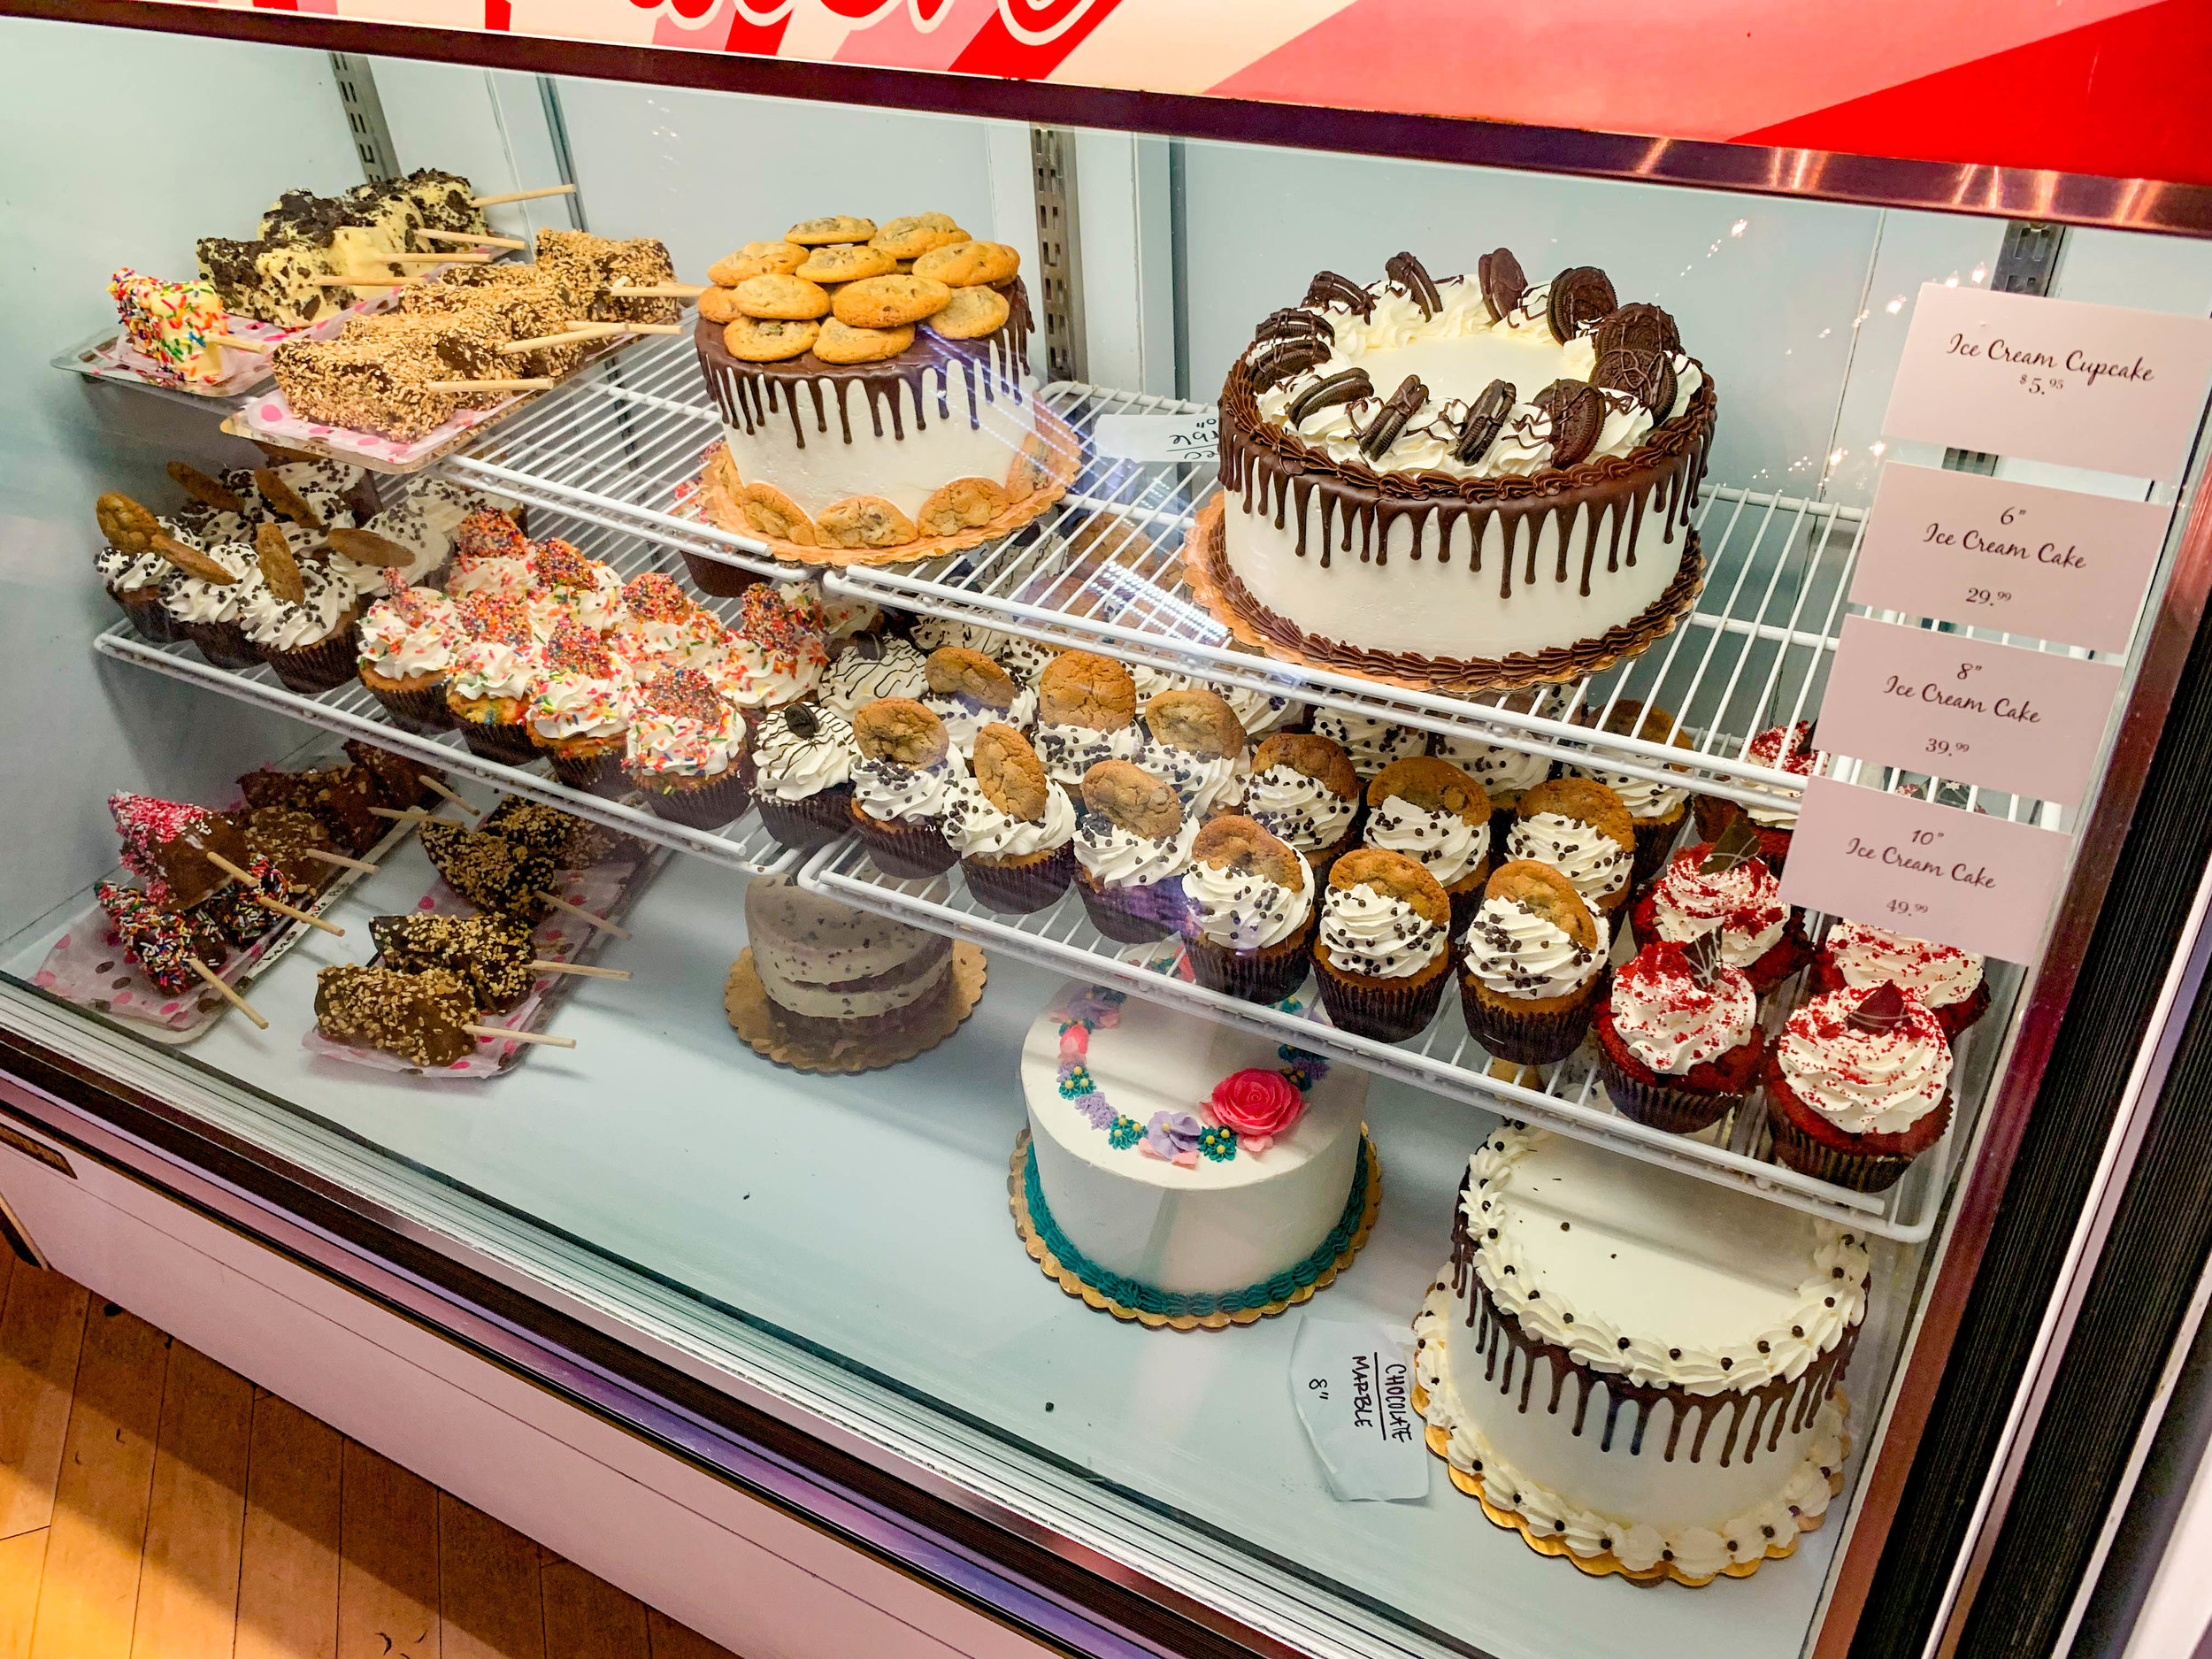 Manhattan Beach Creamery Cupcakes and cakes